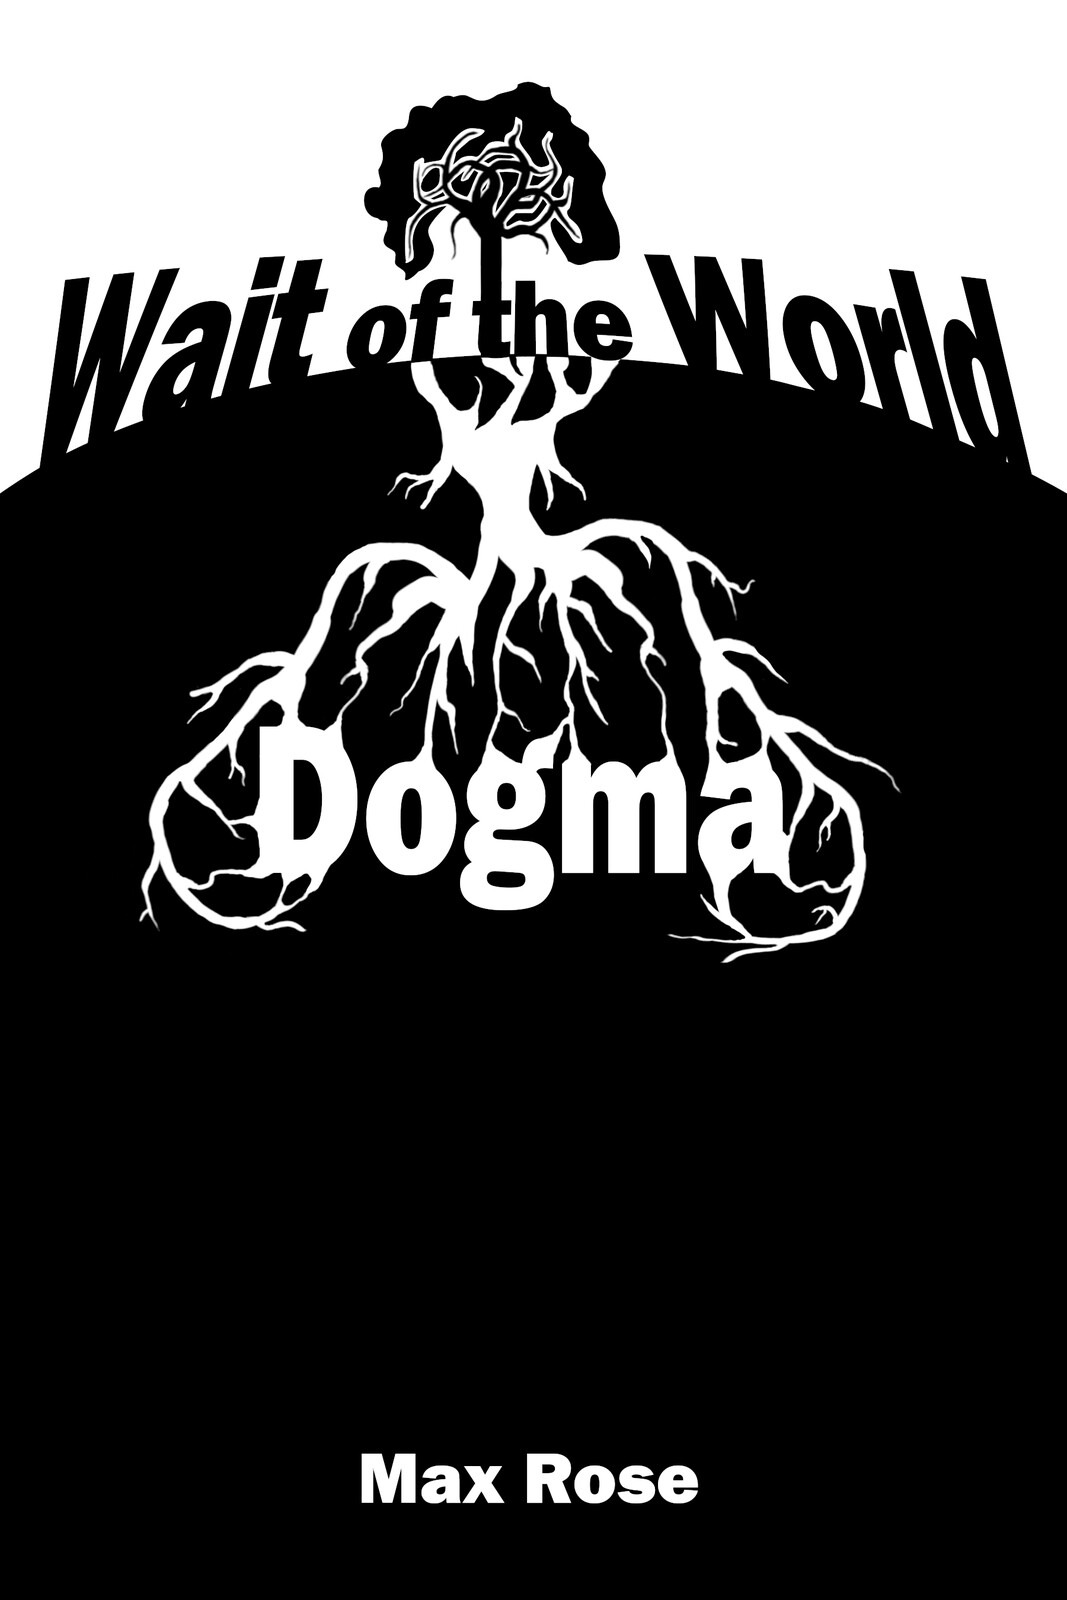 The second version of the WotW: Dogma book cover